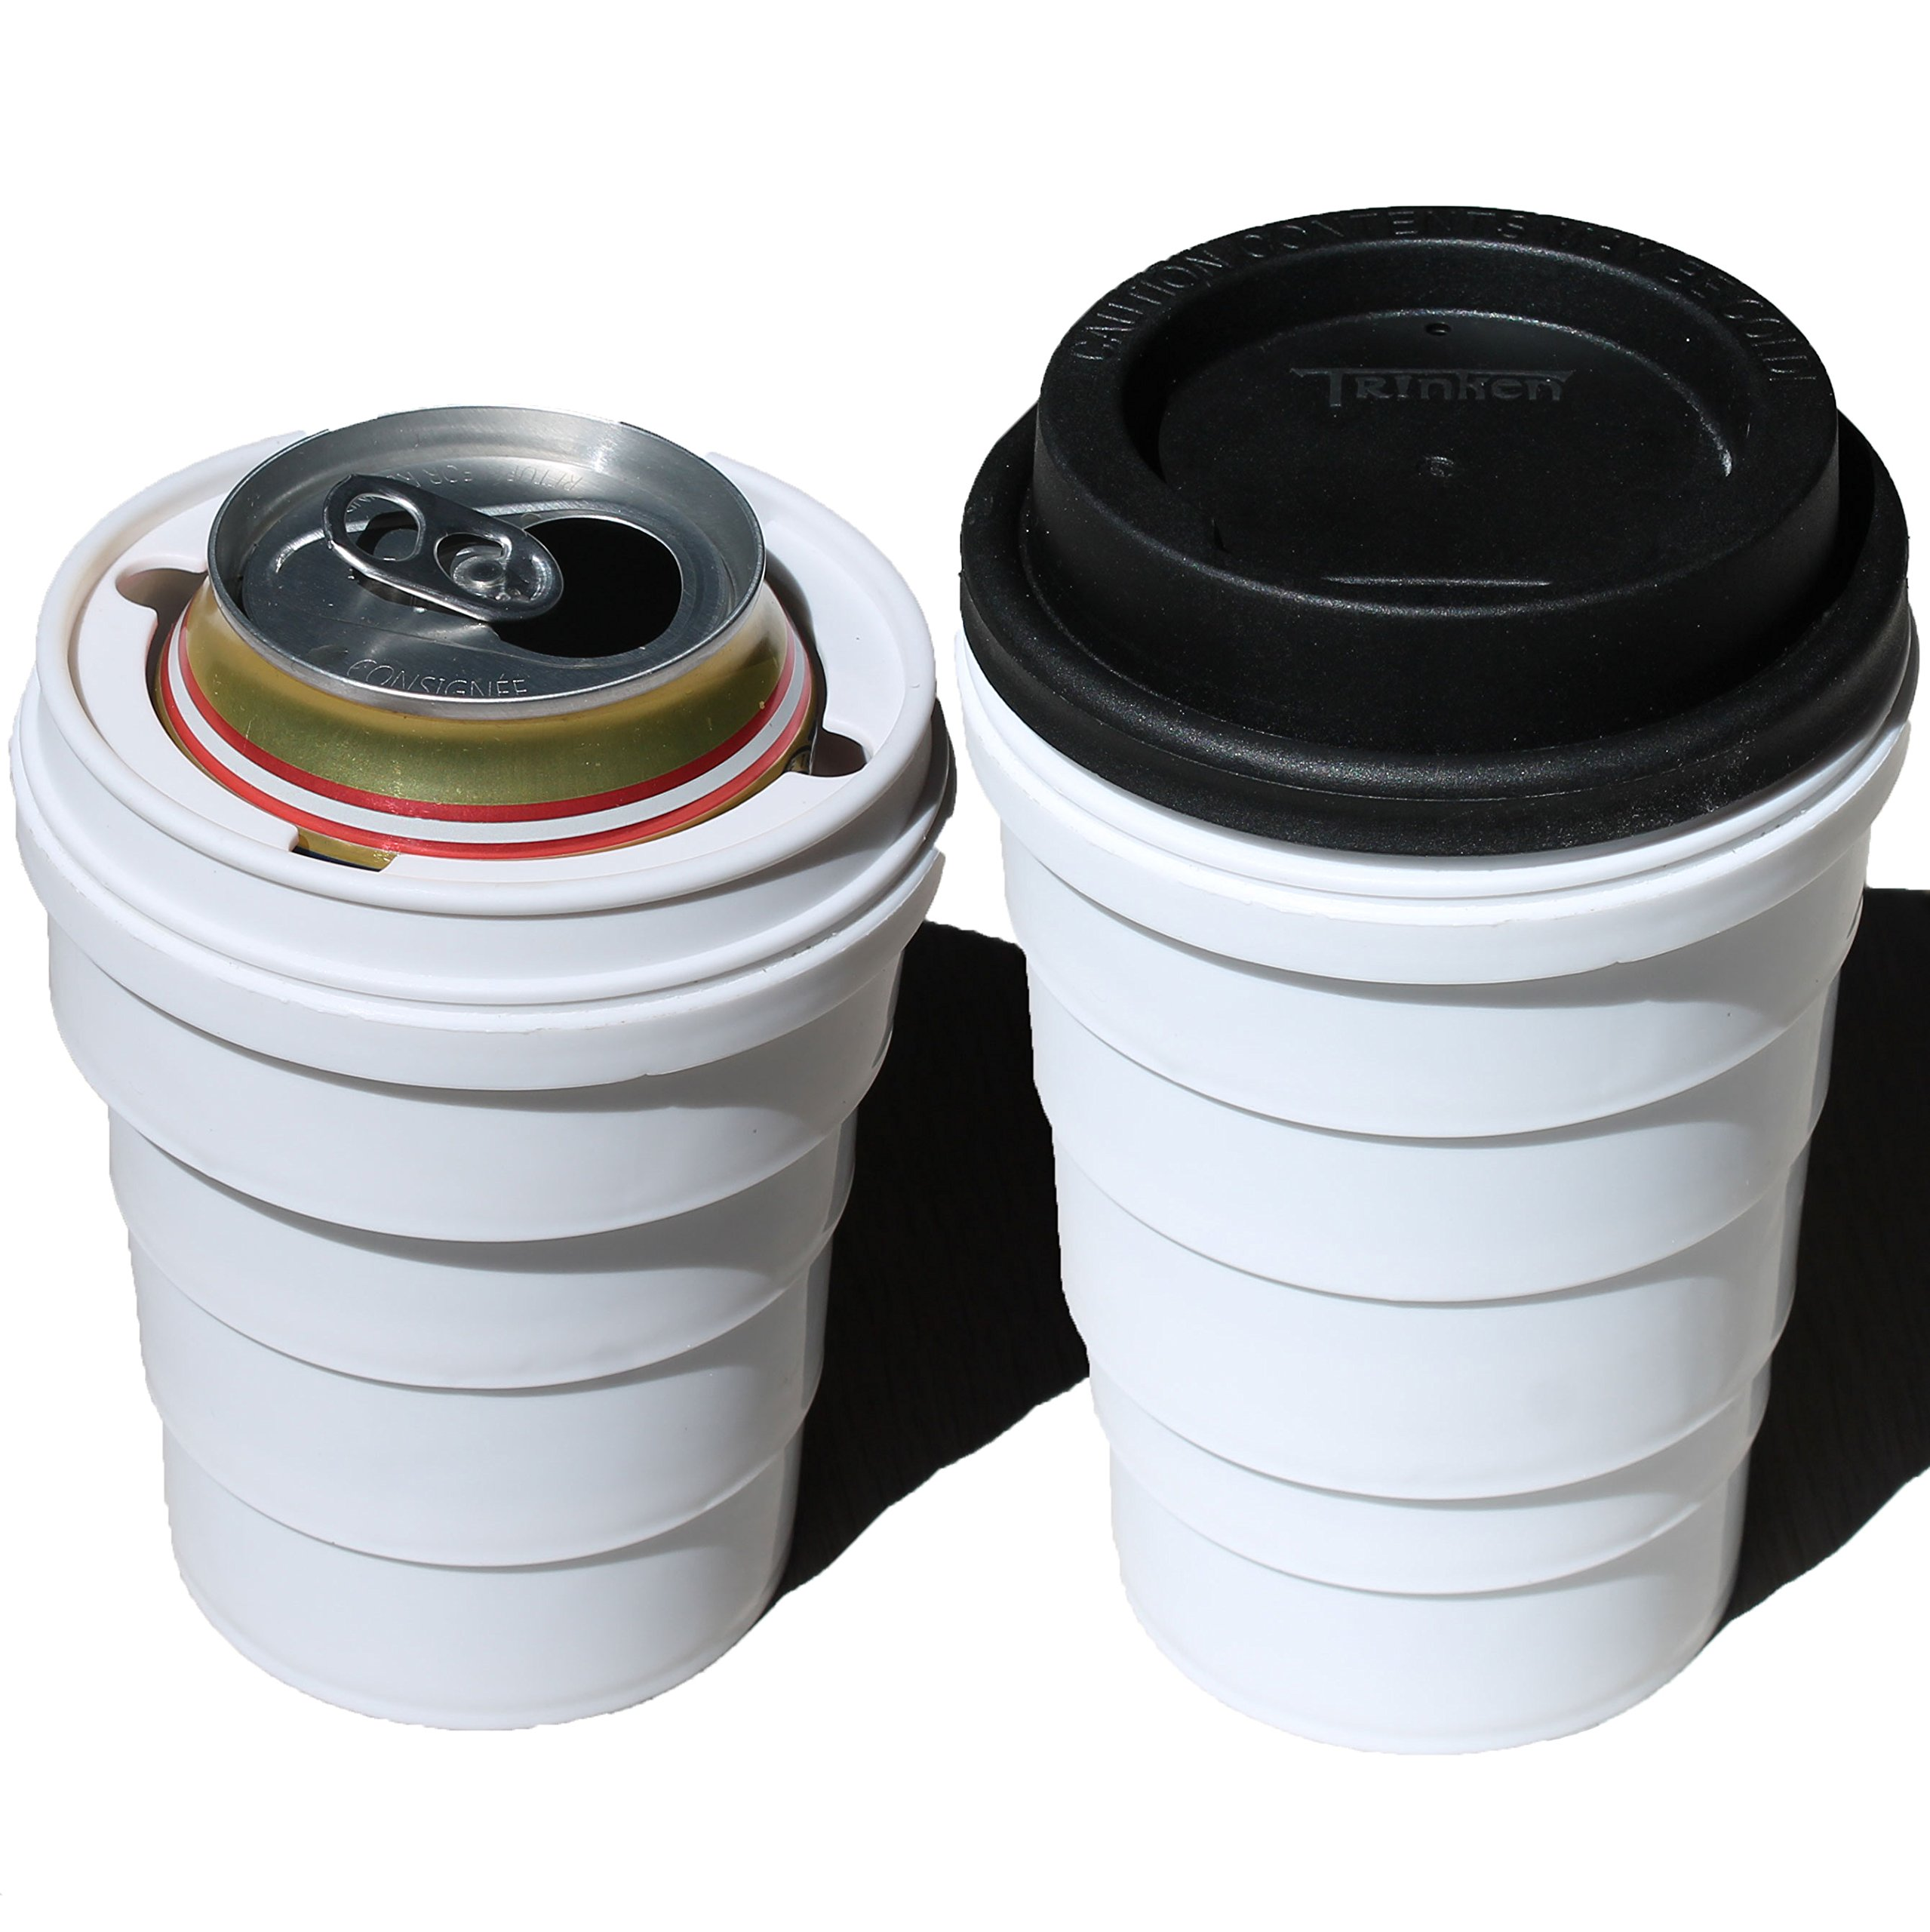 Trinken Lid and Collapsible Cup Can Cooler, Hide Your Beverage Can and Keep it Cold, Perfect for Outdoors Events, Hiding Drinks From Children, Keeping Drinks Cold, Hands Warm Nicer Drinking Experience by Trinken